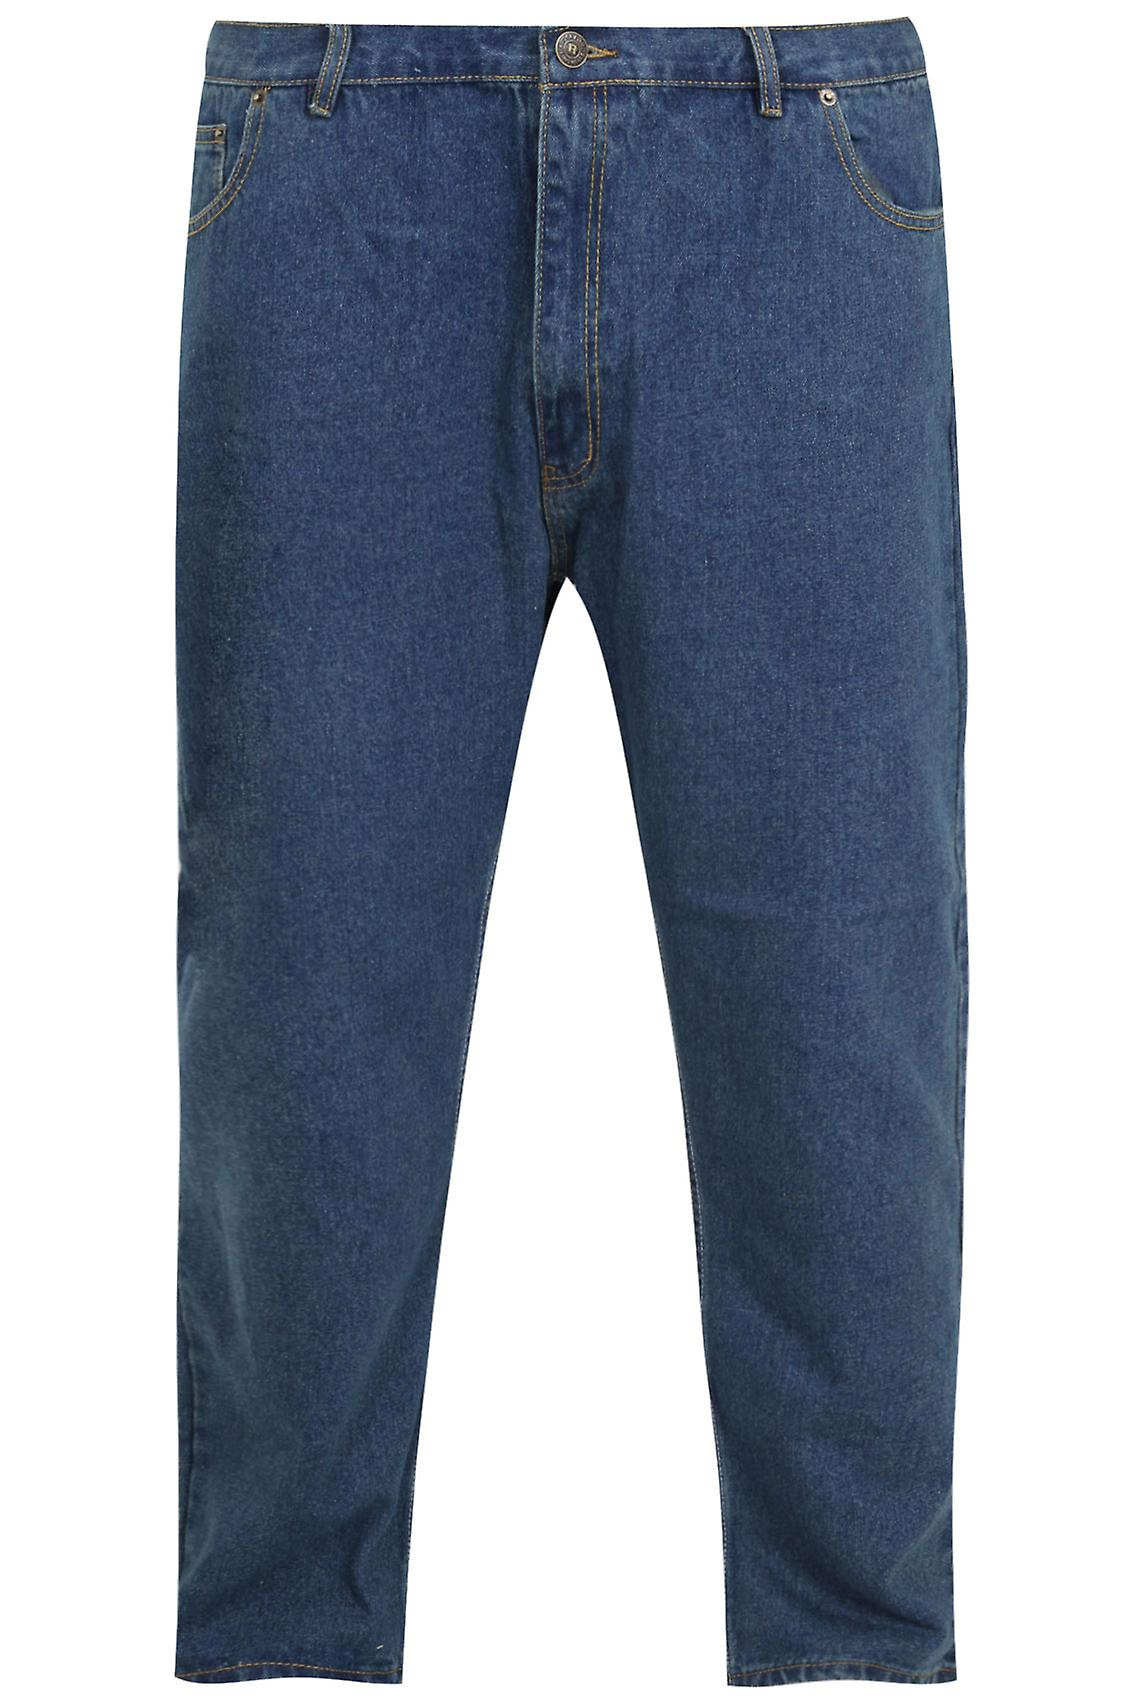 Rockford Stonewash Comfort Fit Jeans